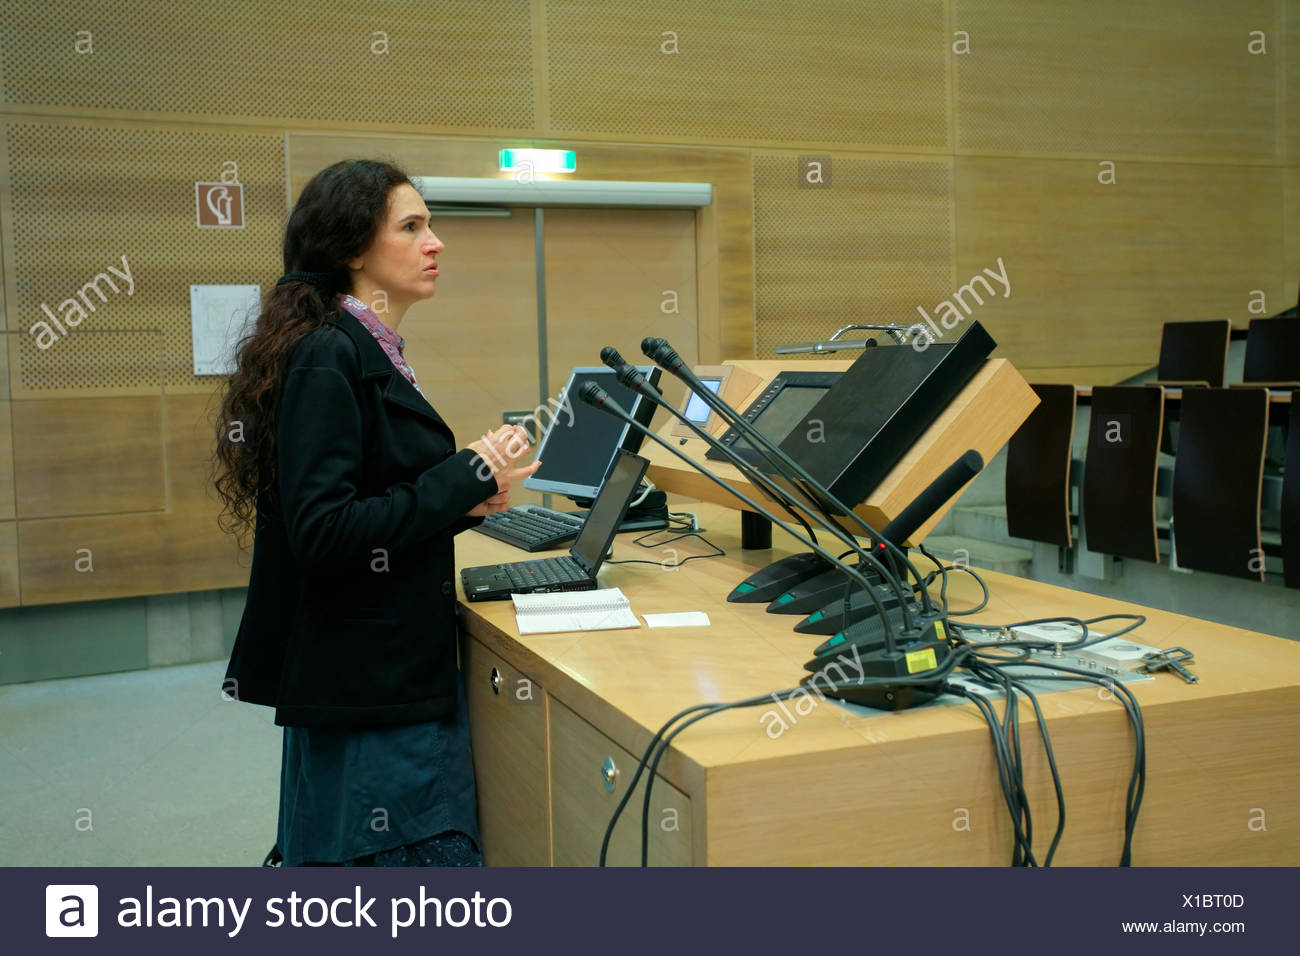 study instruct lecture room - Stock Image